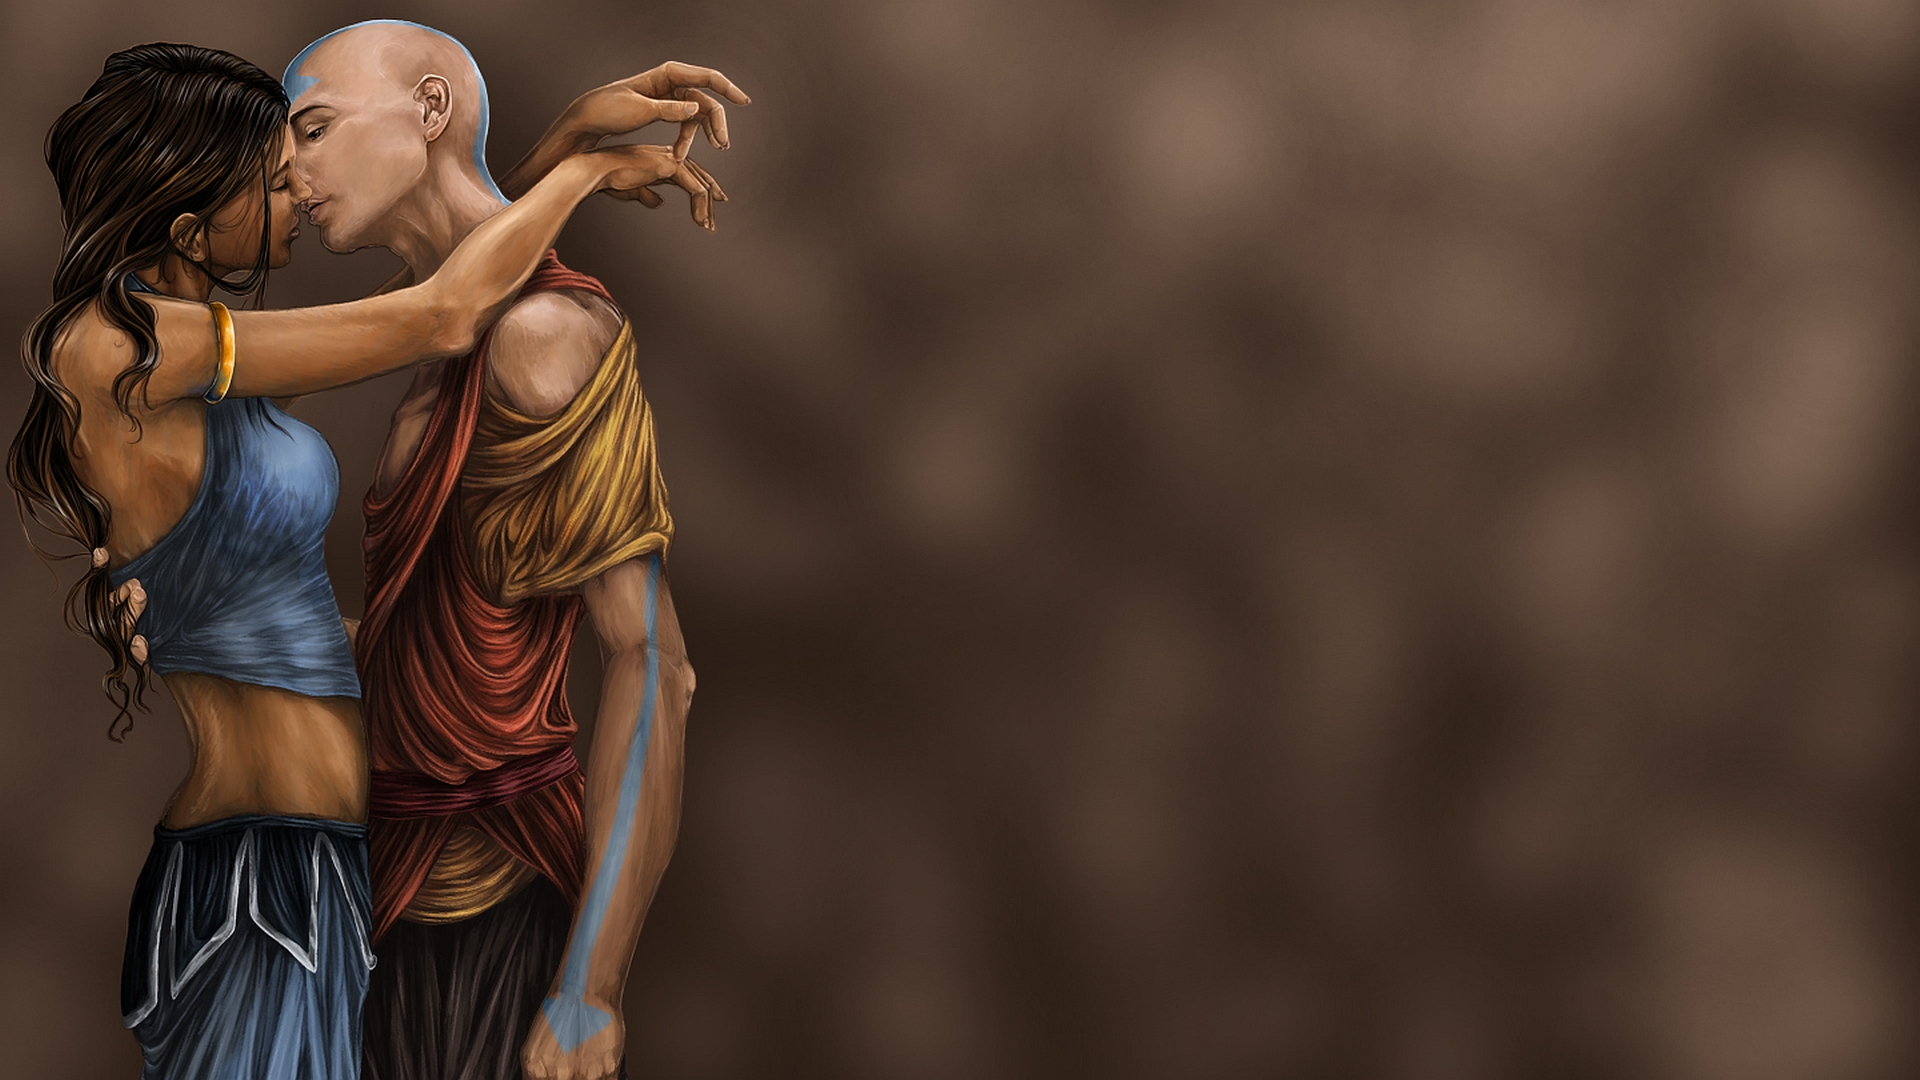 Avatar The Last Airbender Full HD Wallpaper And Background Image